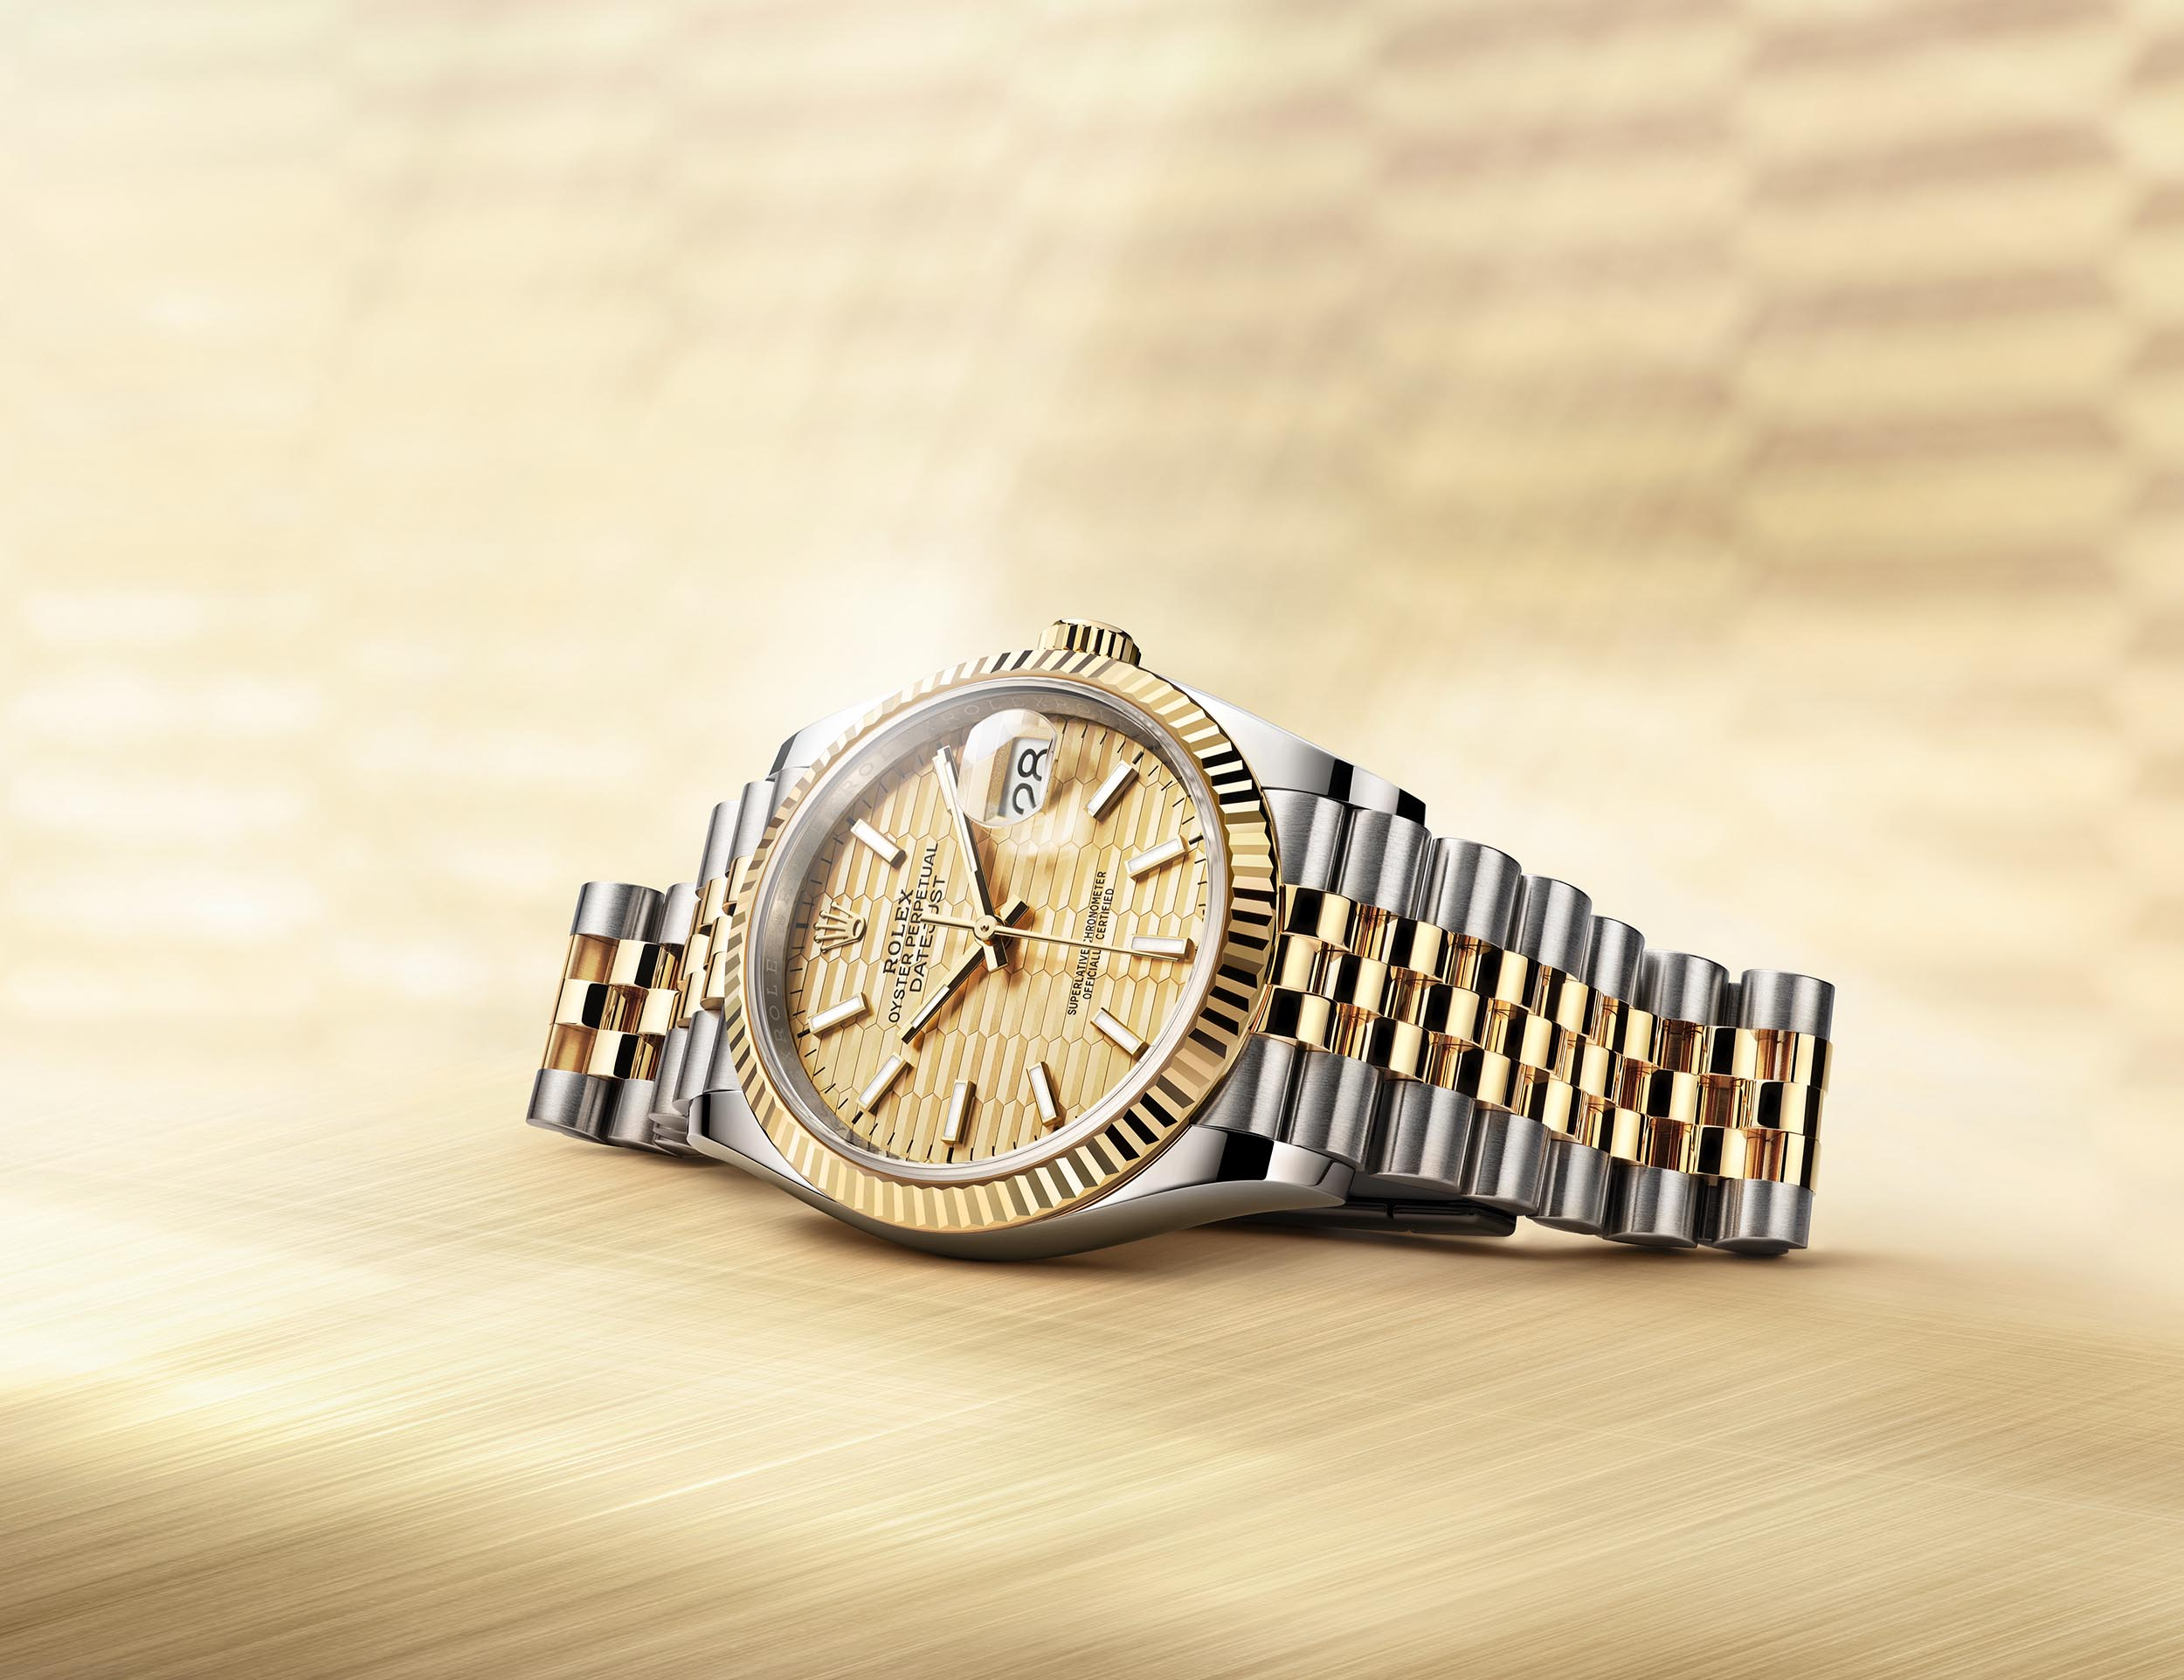 đồng hồ Oyster Perpetual Datejust 36 6